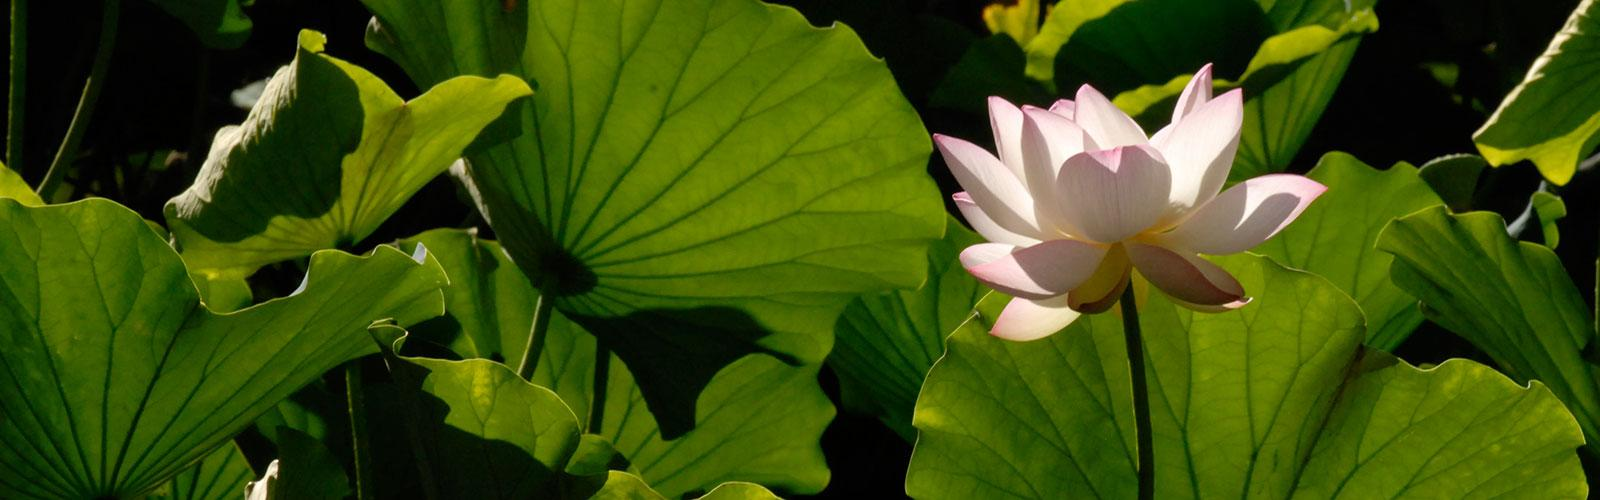 picture of water flower in turtle pond